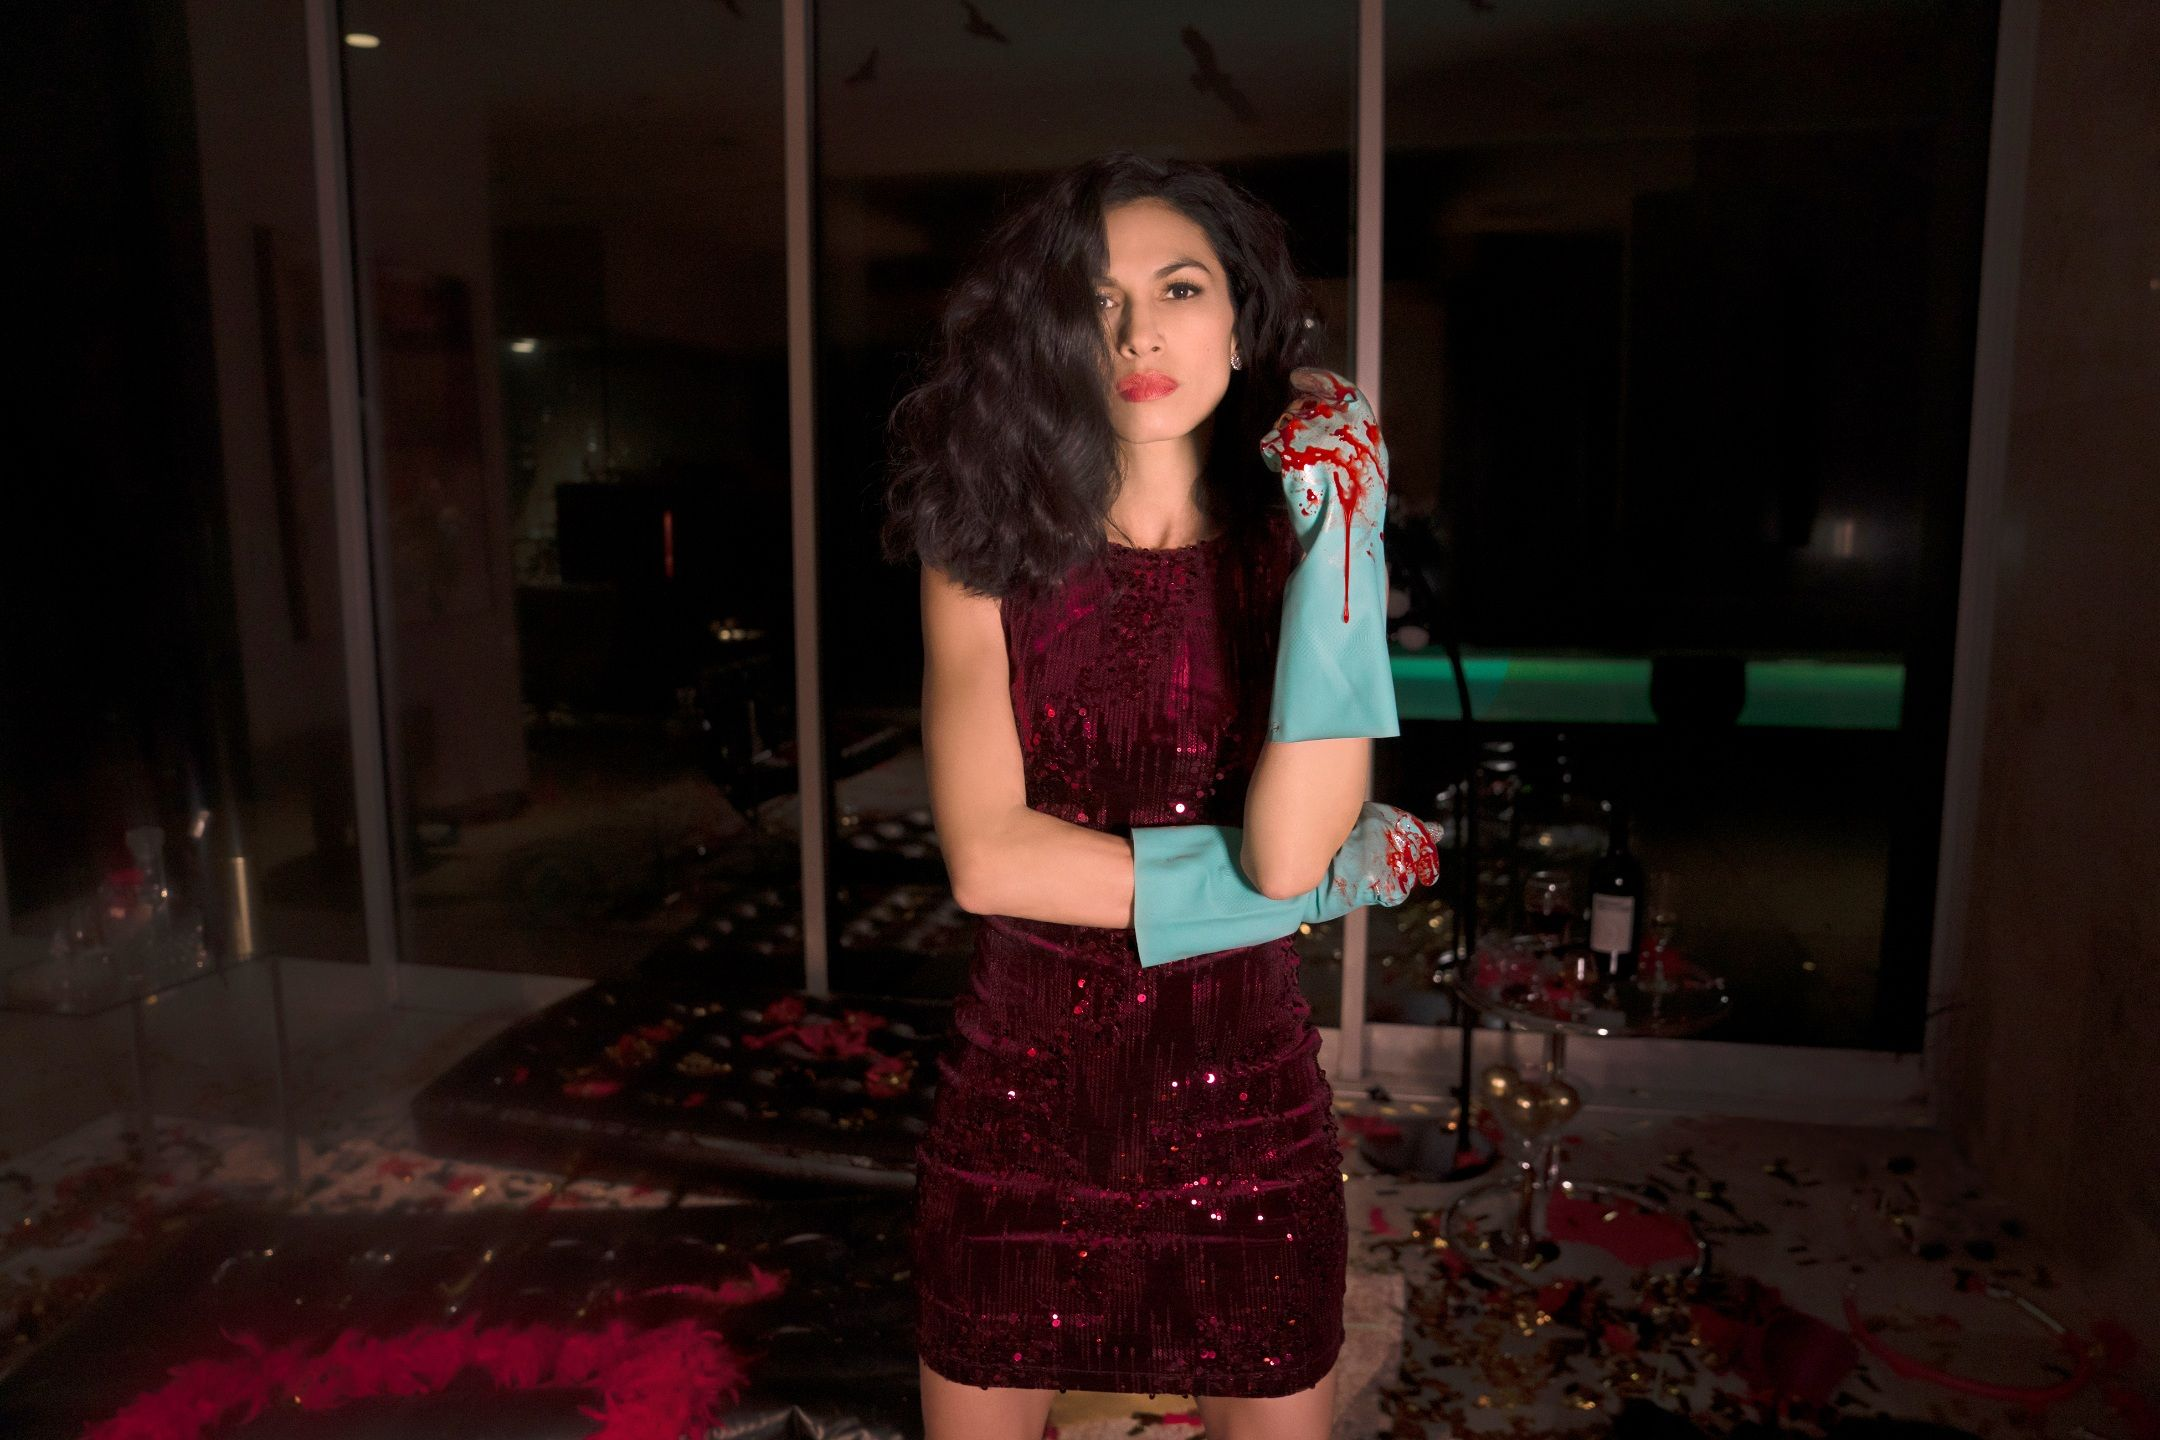 The Cleaning Lady Trailer Reveals Elodie Yung's New Fox Show